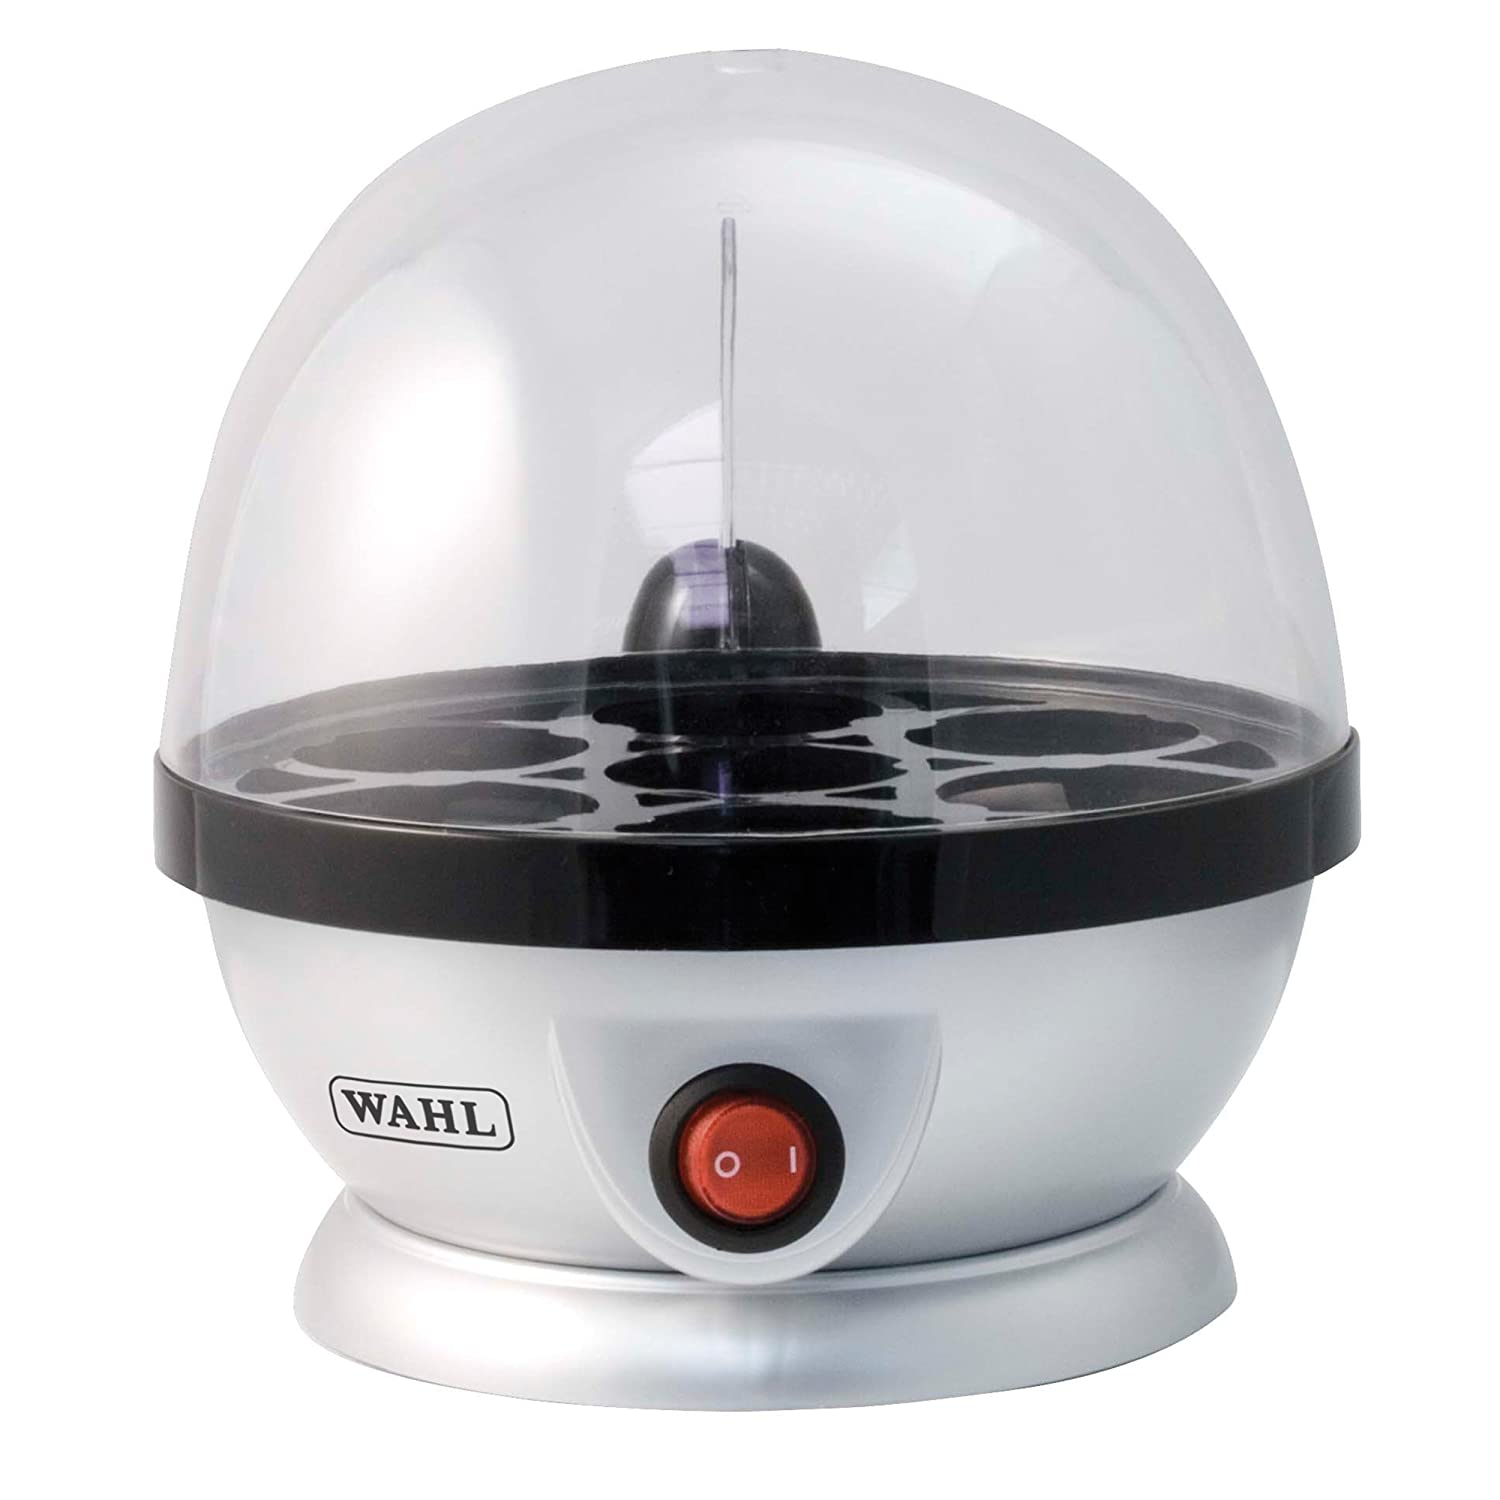 Wahl ZX642 Non Stick Electric Egg Boiler, Hard Soft Boiled Cooker Maker 7 Eggs